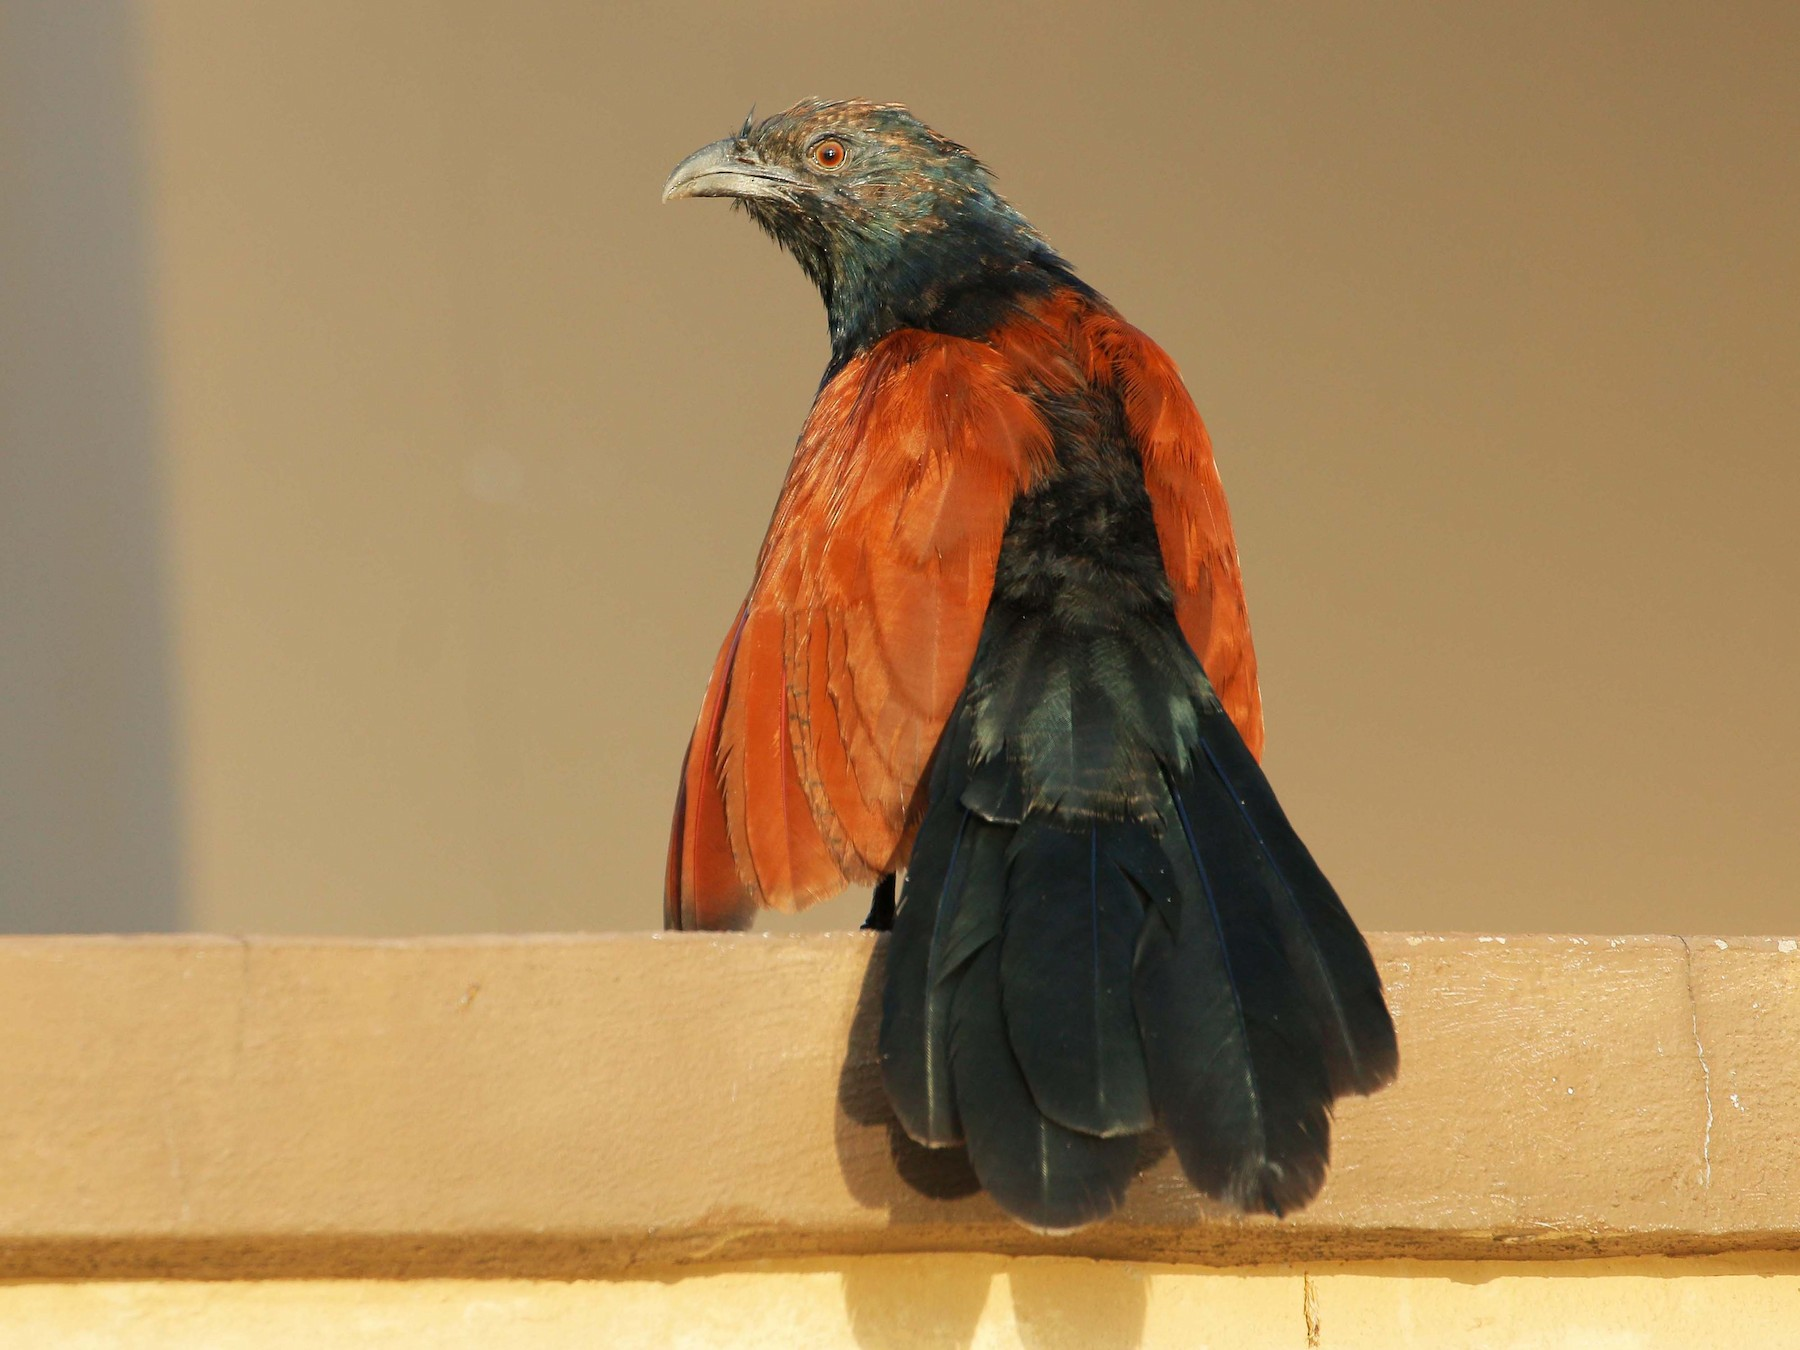 Greater Coucal - Neoh Hor Kee